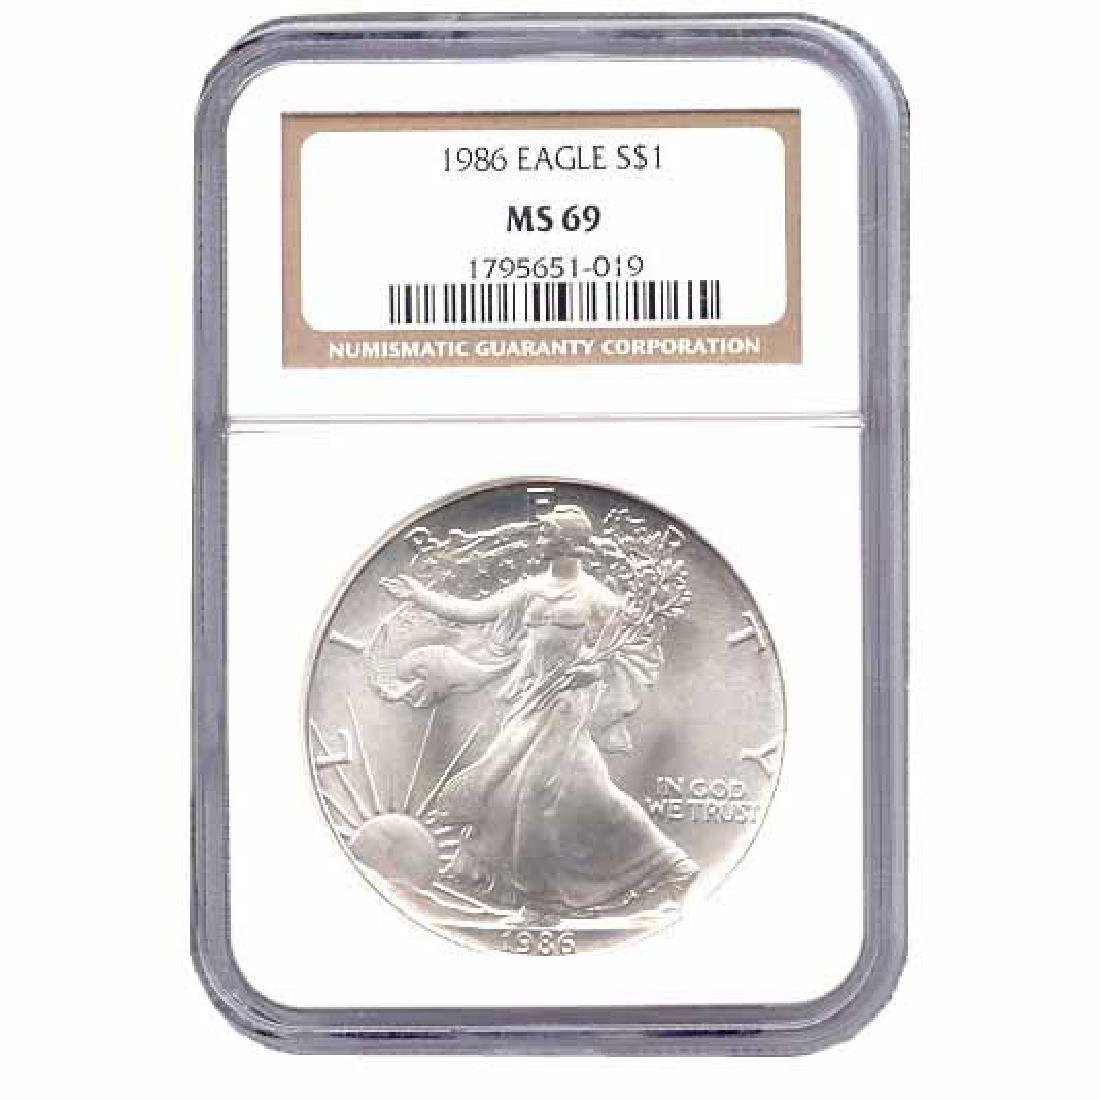 Certified Uncirculated Silver Eagle 1986 MS69